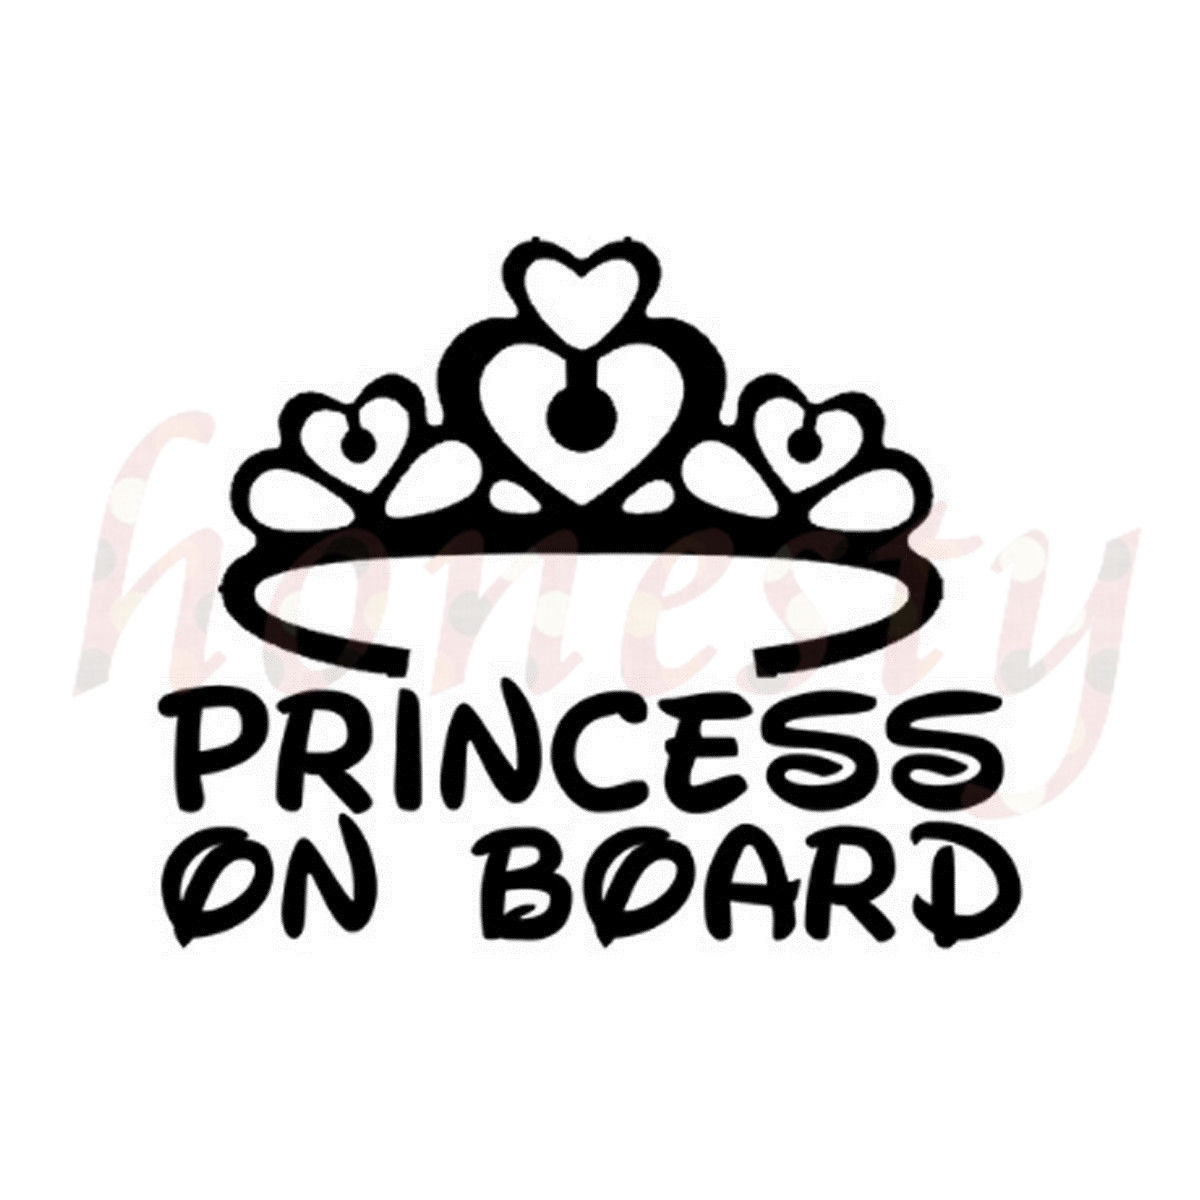 1200x1200 Princess On Board Baby Home Truck Van Wall Sticker Glass Laptop